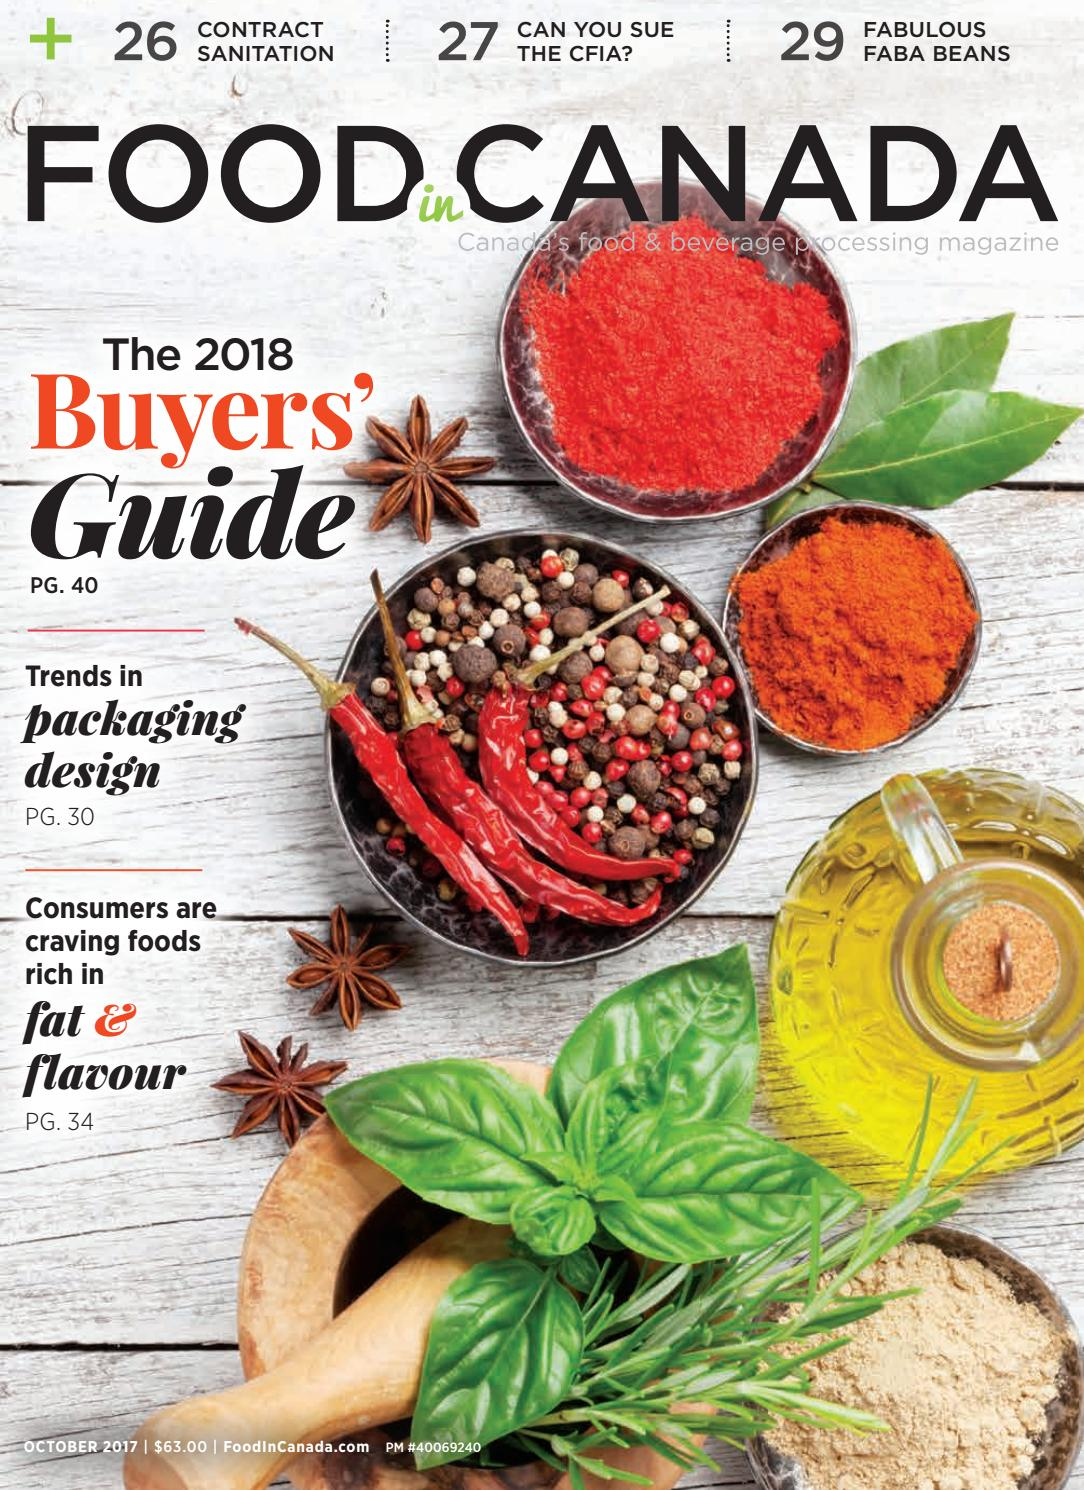 2017 10 01 by farm business communications issuu for Cuisine good food guide 2017